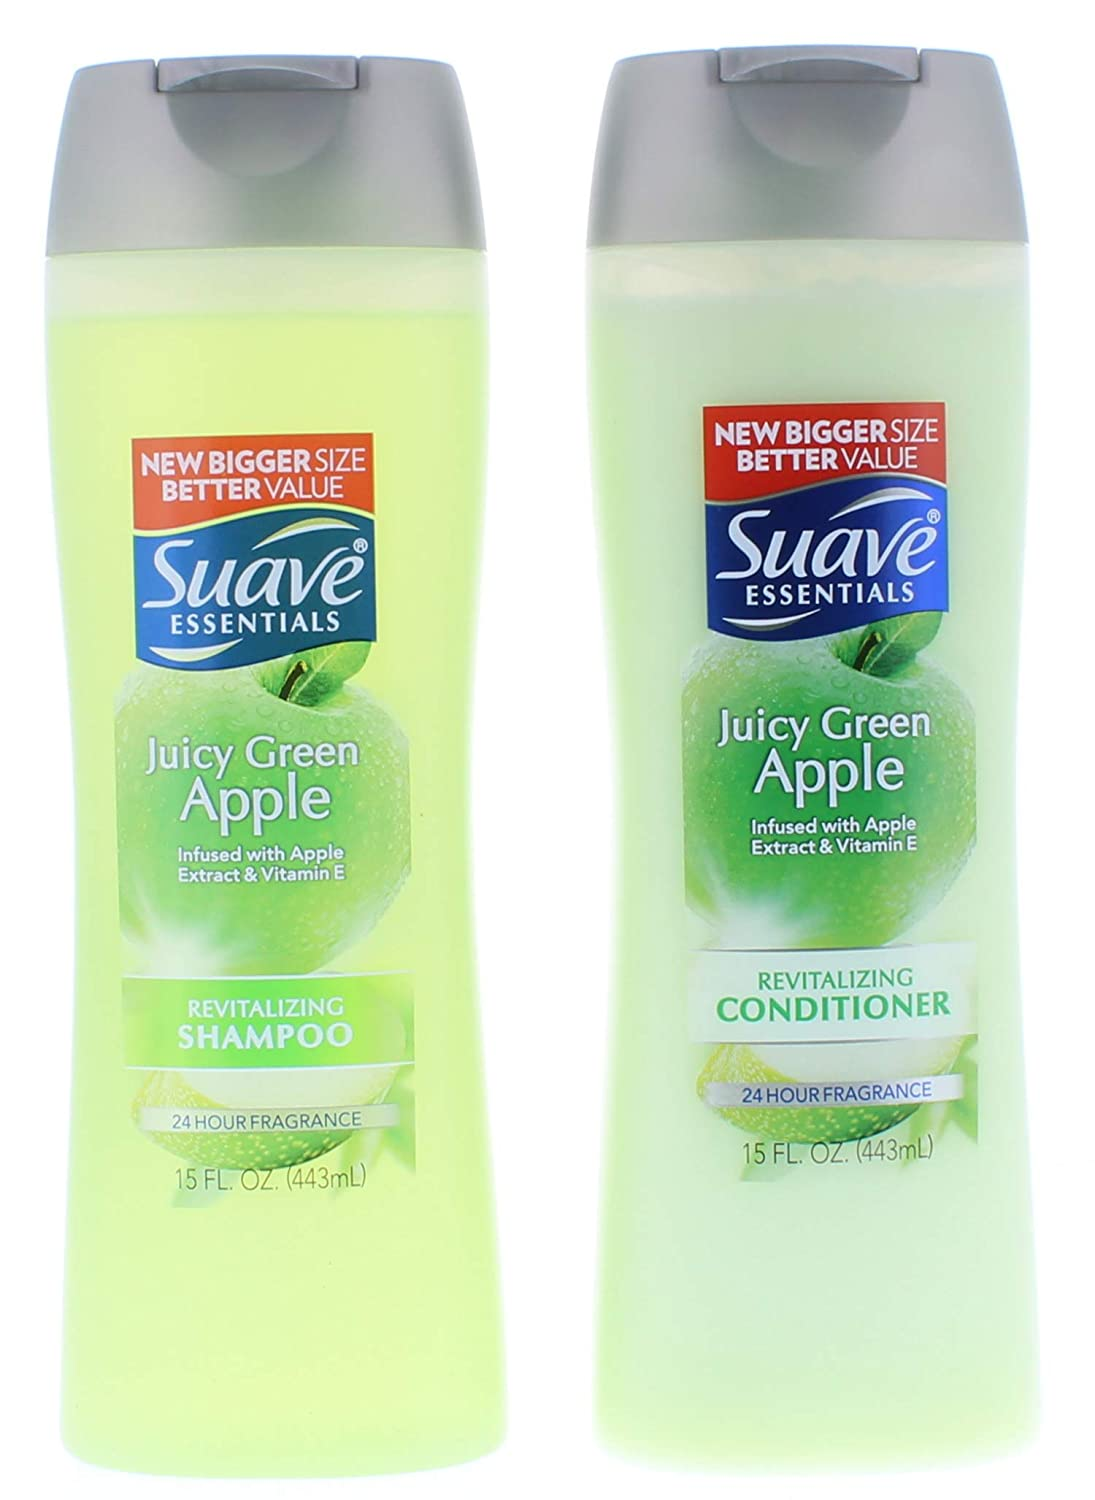 Suave Essentials Juicy Green Apple Shampoo and Conditioner 15 Fl. Oz.